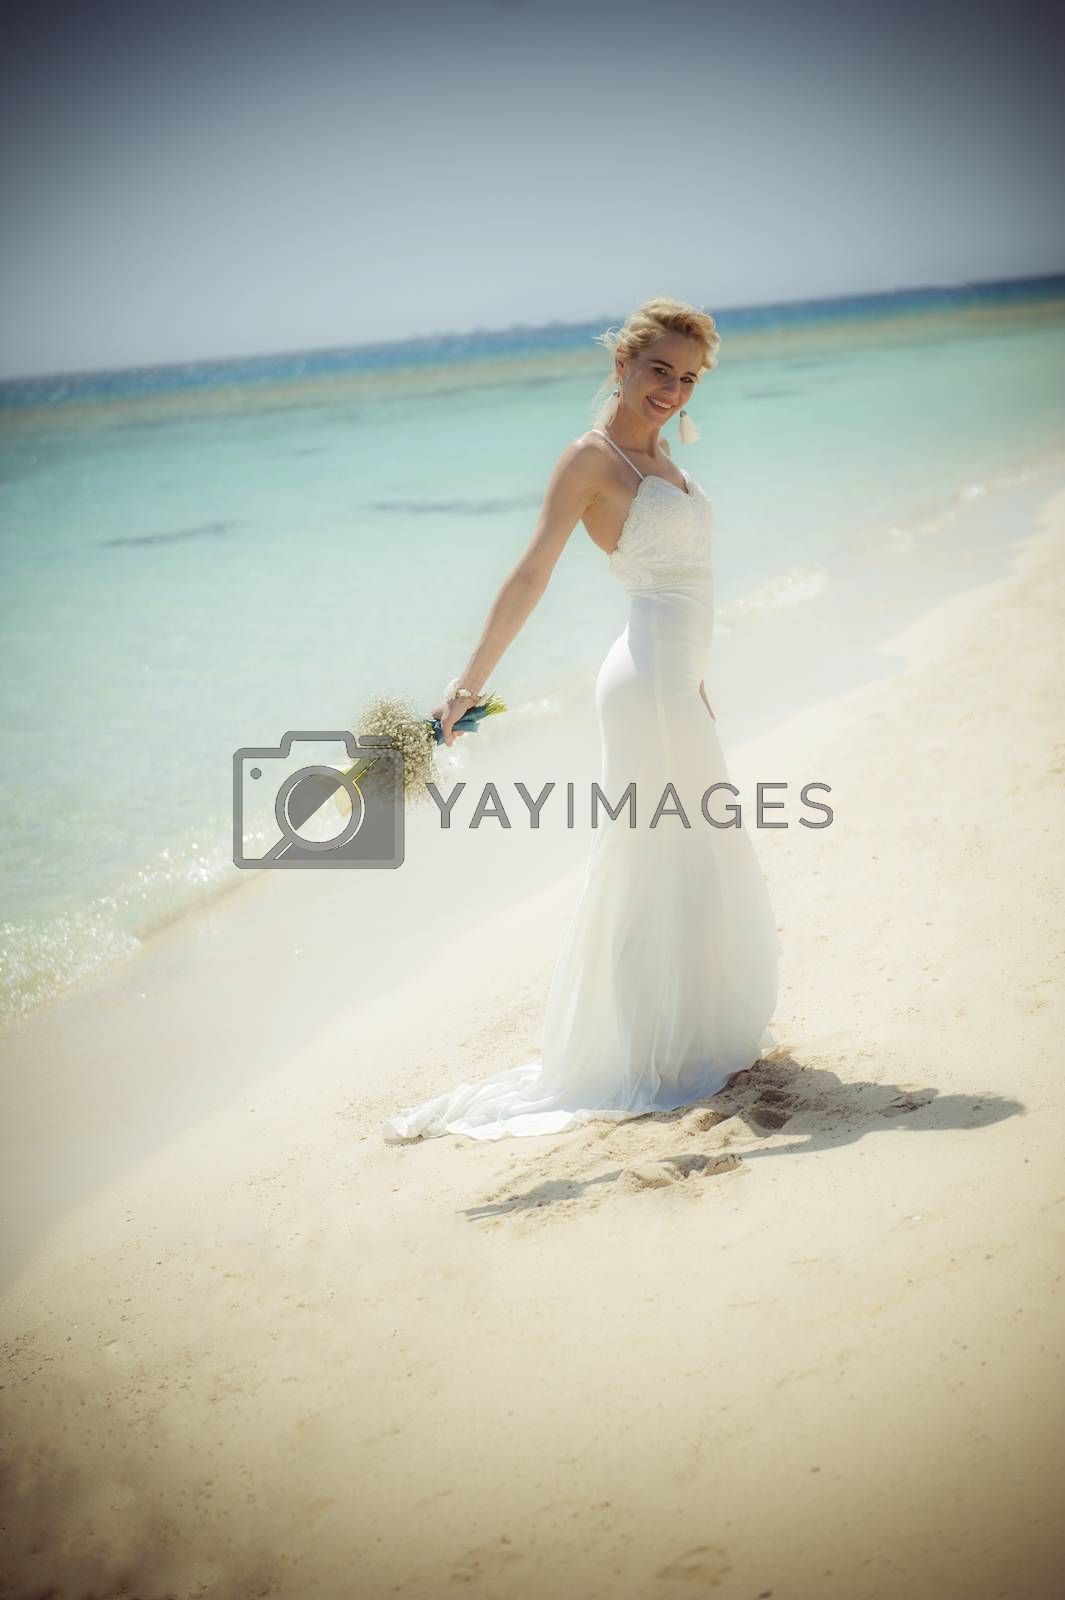 Beautiful woman bride at a tropical beach paradise on wedding day in white gown dress with ocean view vintage style photo